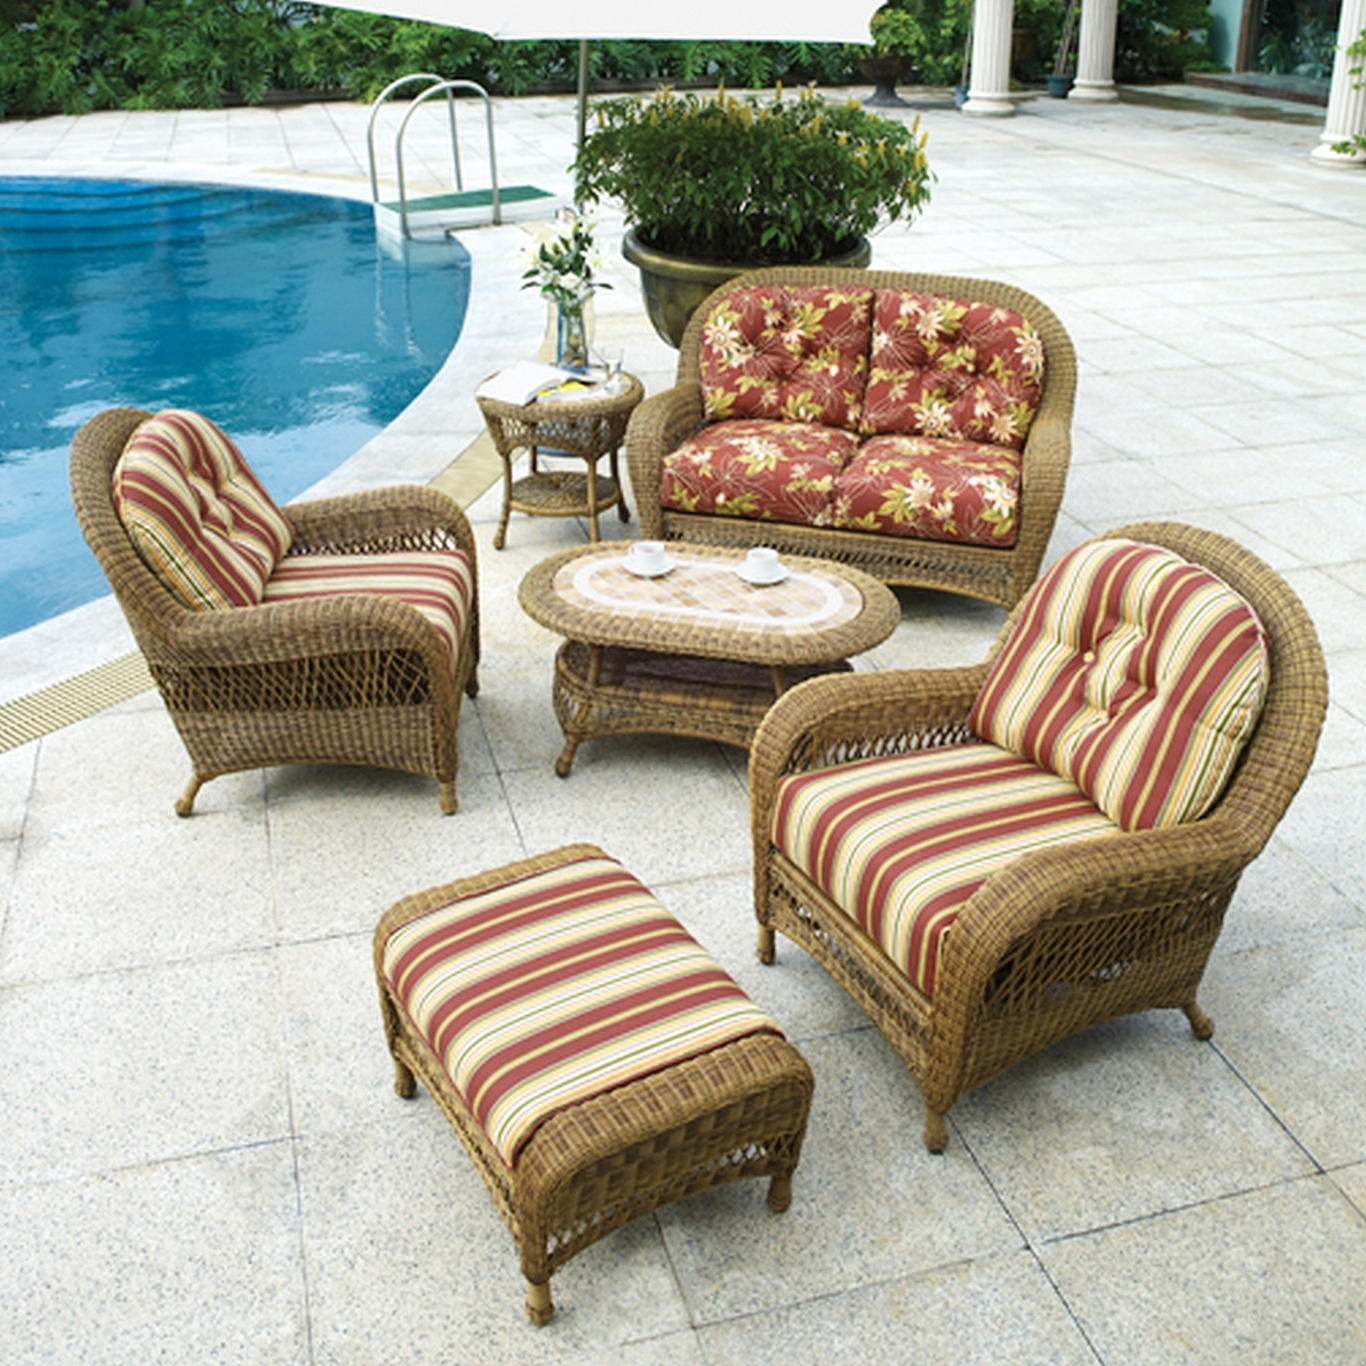 Recent Macys Outdoor Chaise Lounge Chairs Intended For Sunbrella Outdoor Furniture Sunbrella Lounge Chairs Macys (View 13 of 15)